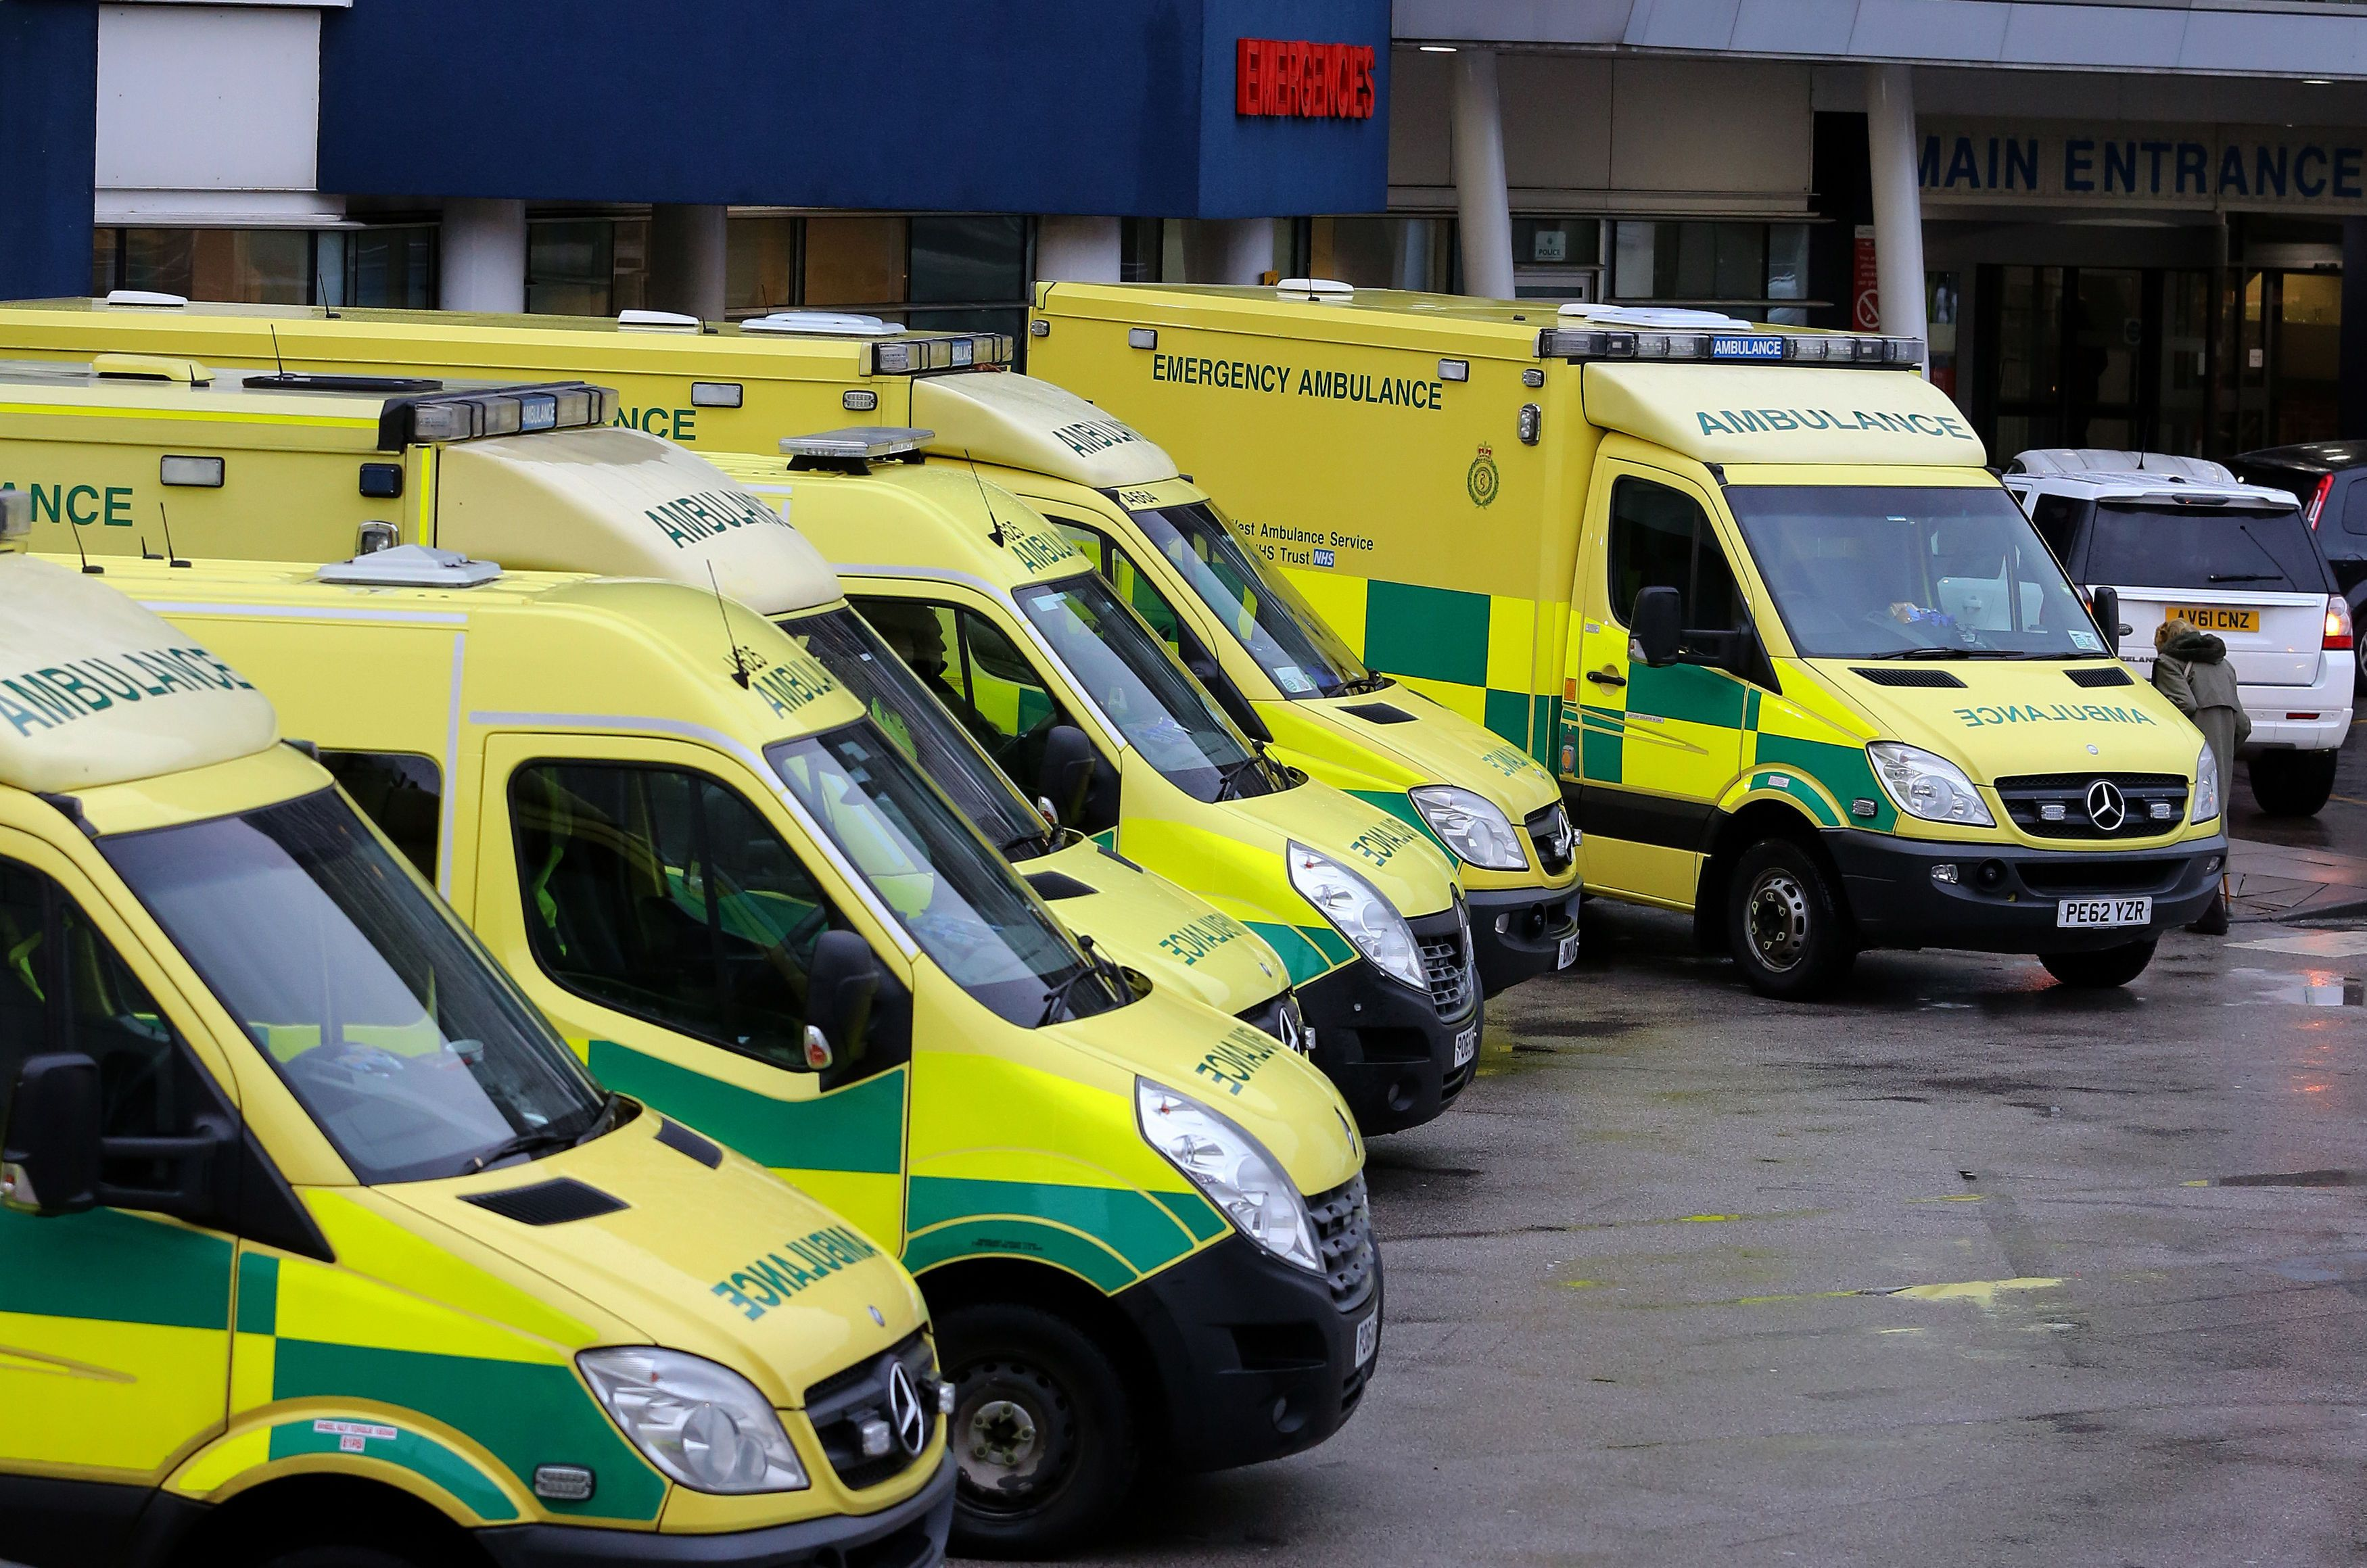 Police Investigate 'Fake' London Paramedic Who May Have Treated 100